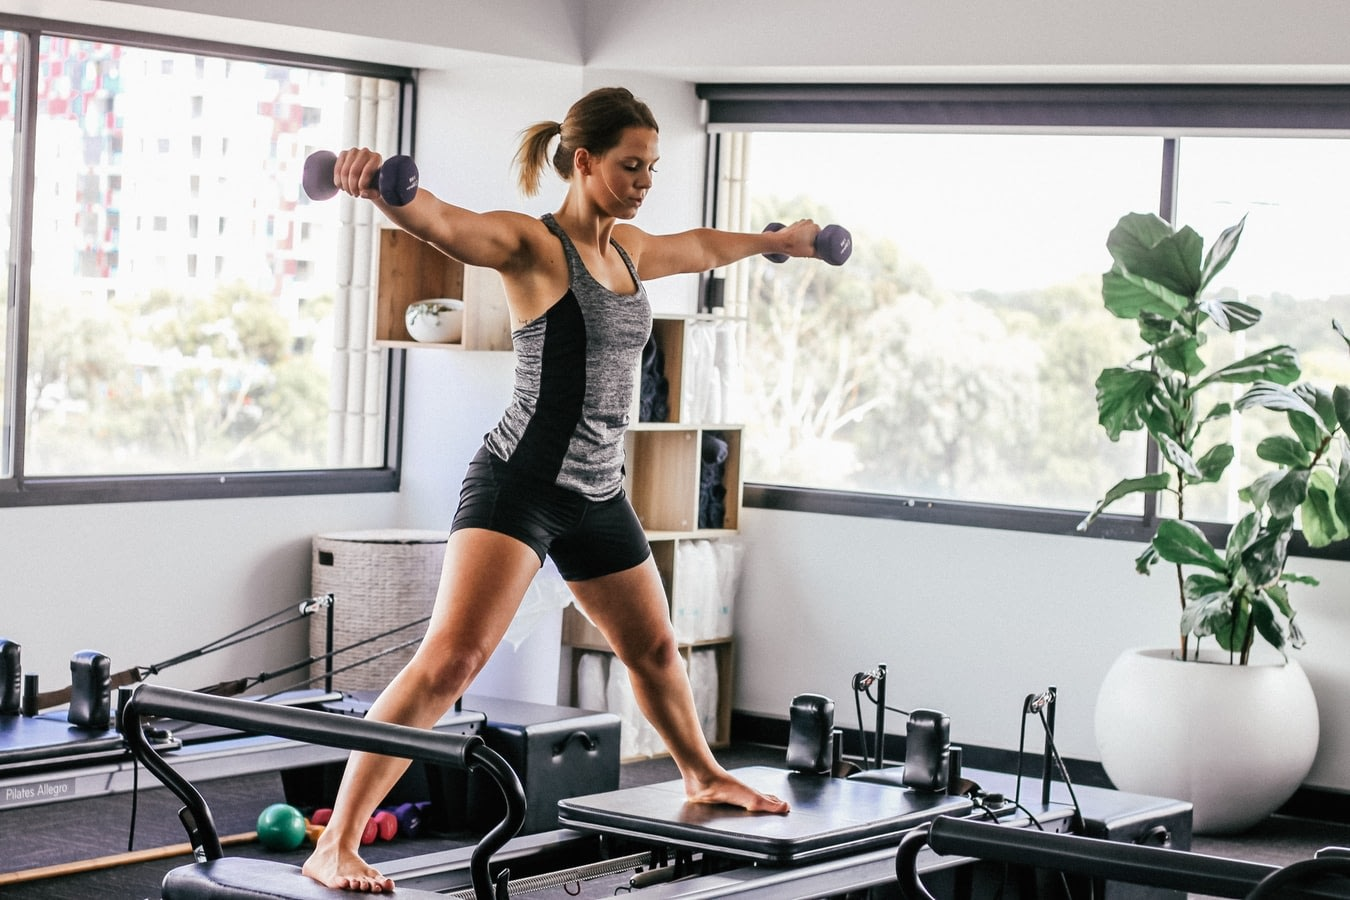 woman using trendy fitness equipment in her home